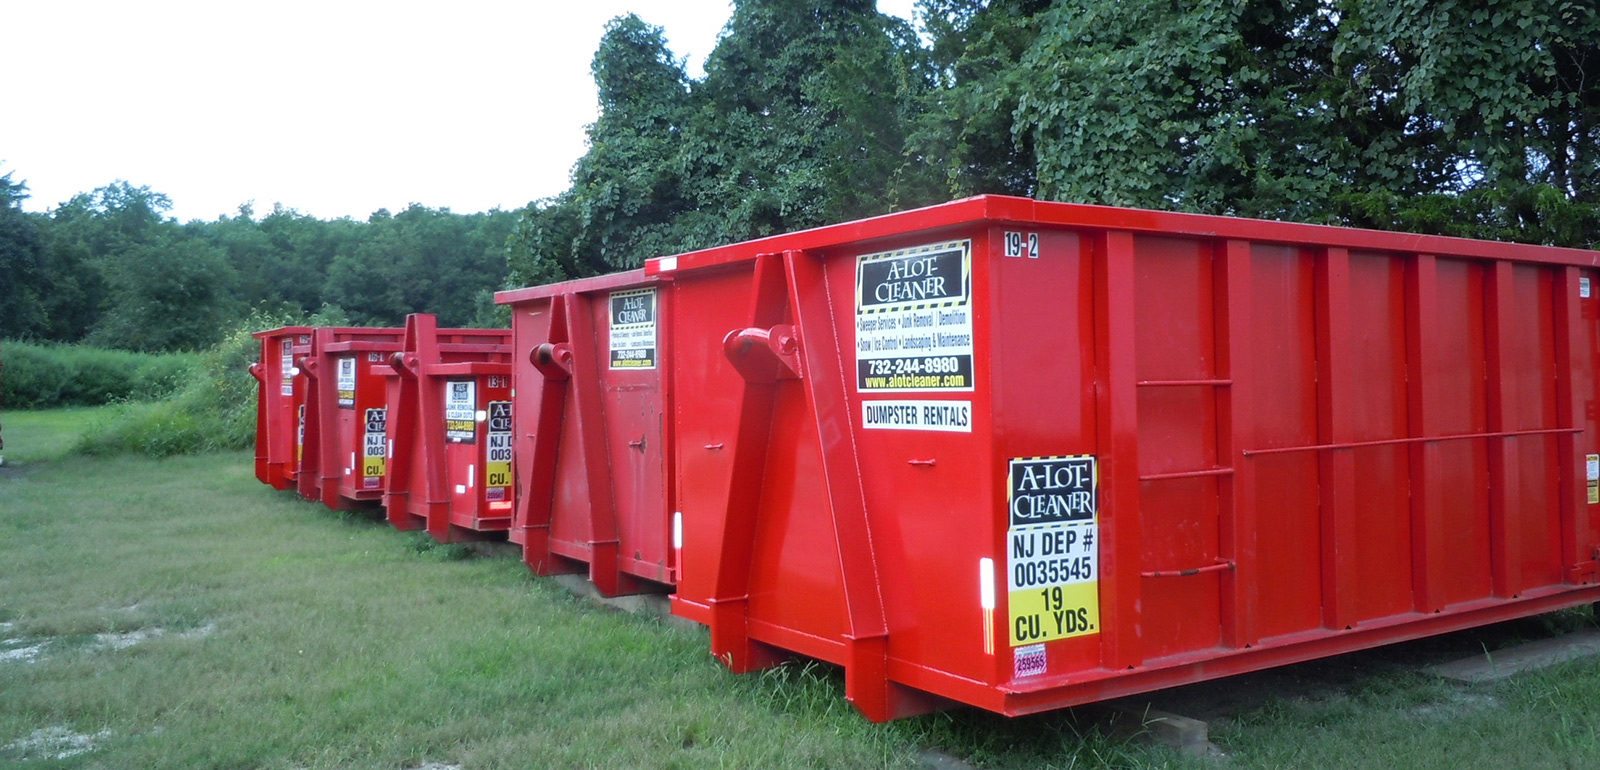 Bay Head Nj Dumpster Rentals